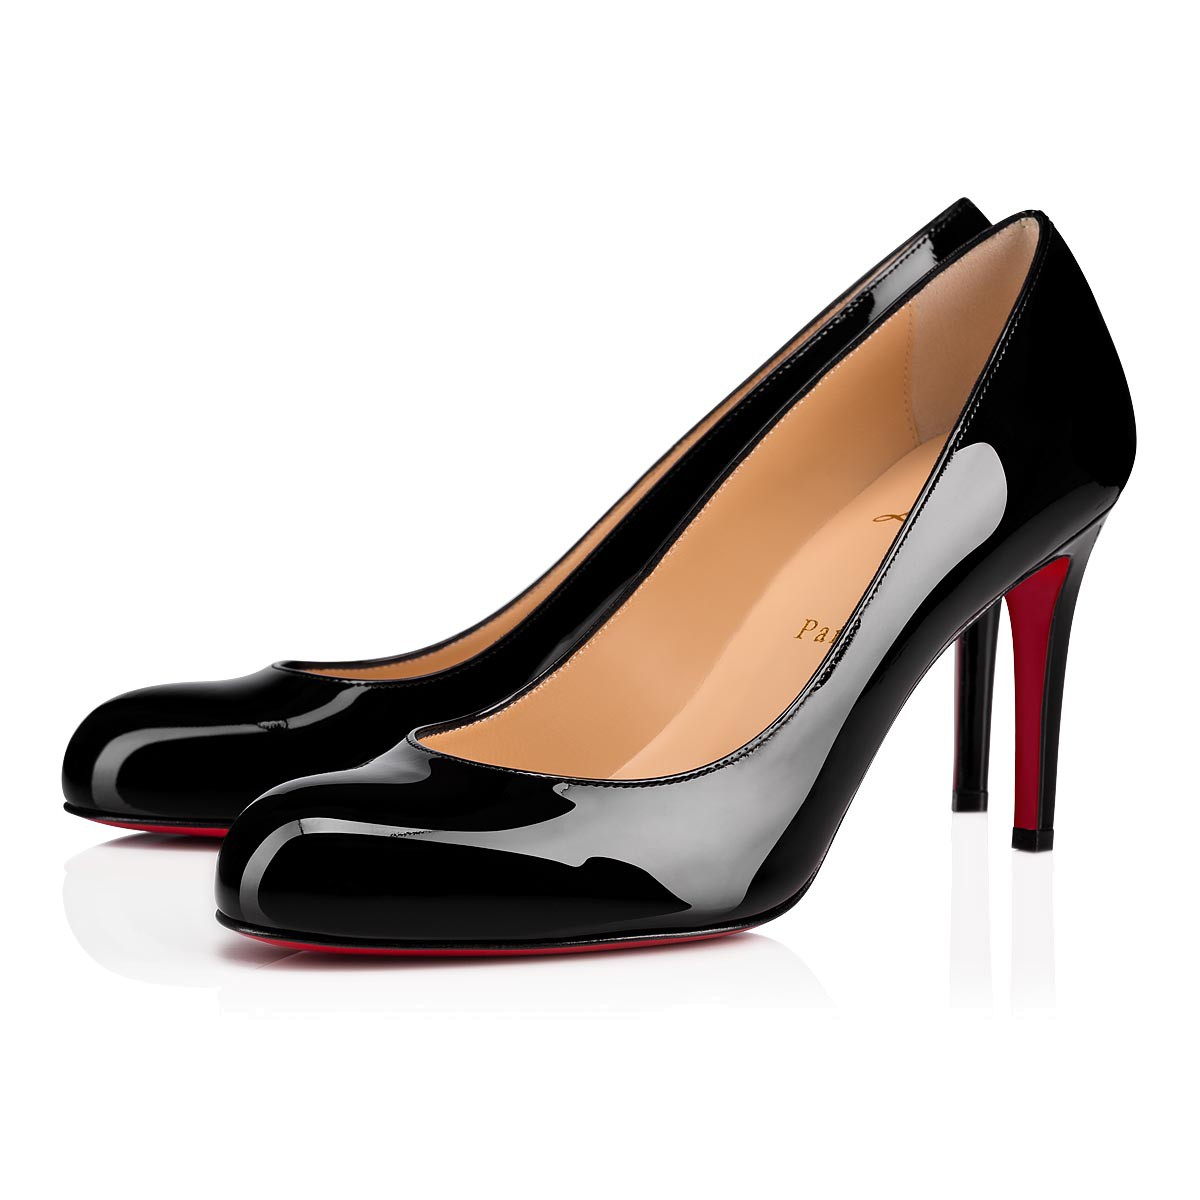 b88047b63ba Simple Pump 85 Black Patent Leather - Women Shoes - Christian Louboutin